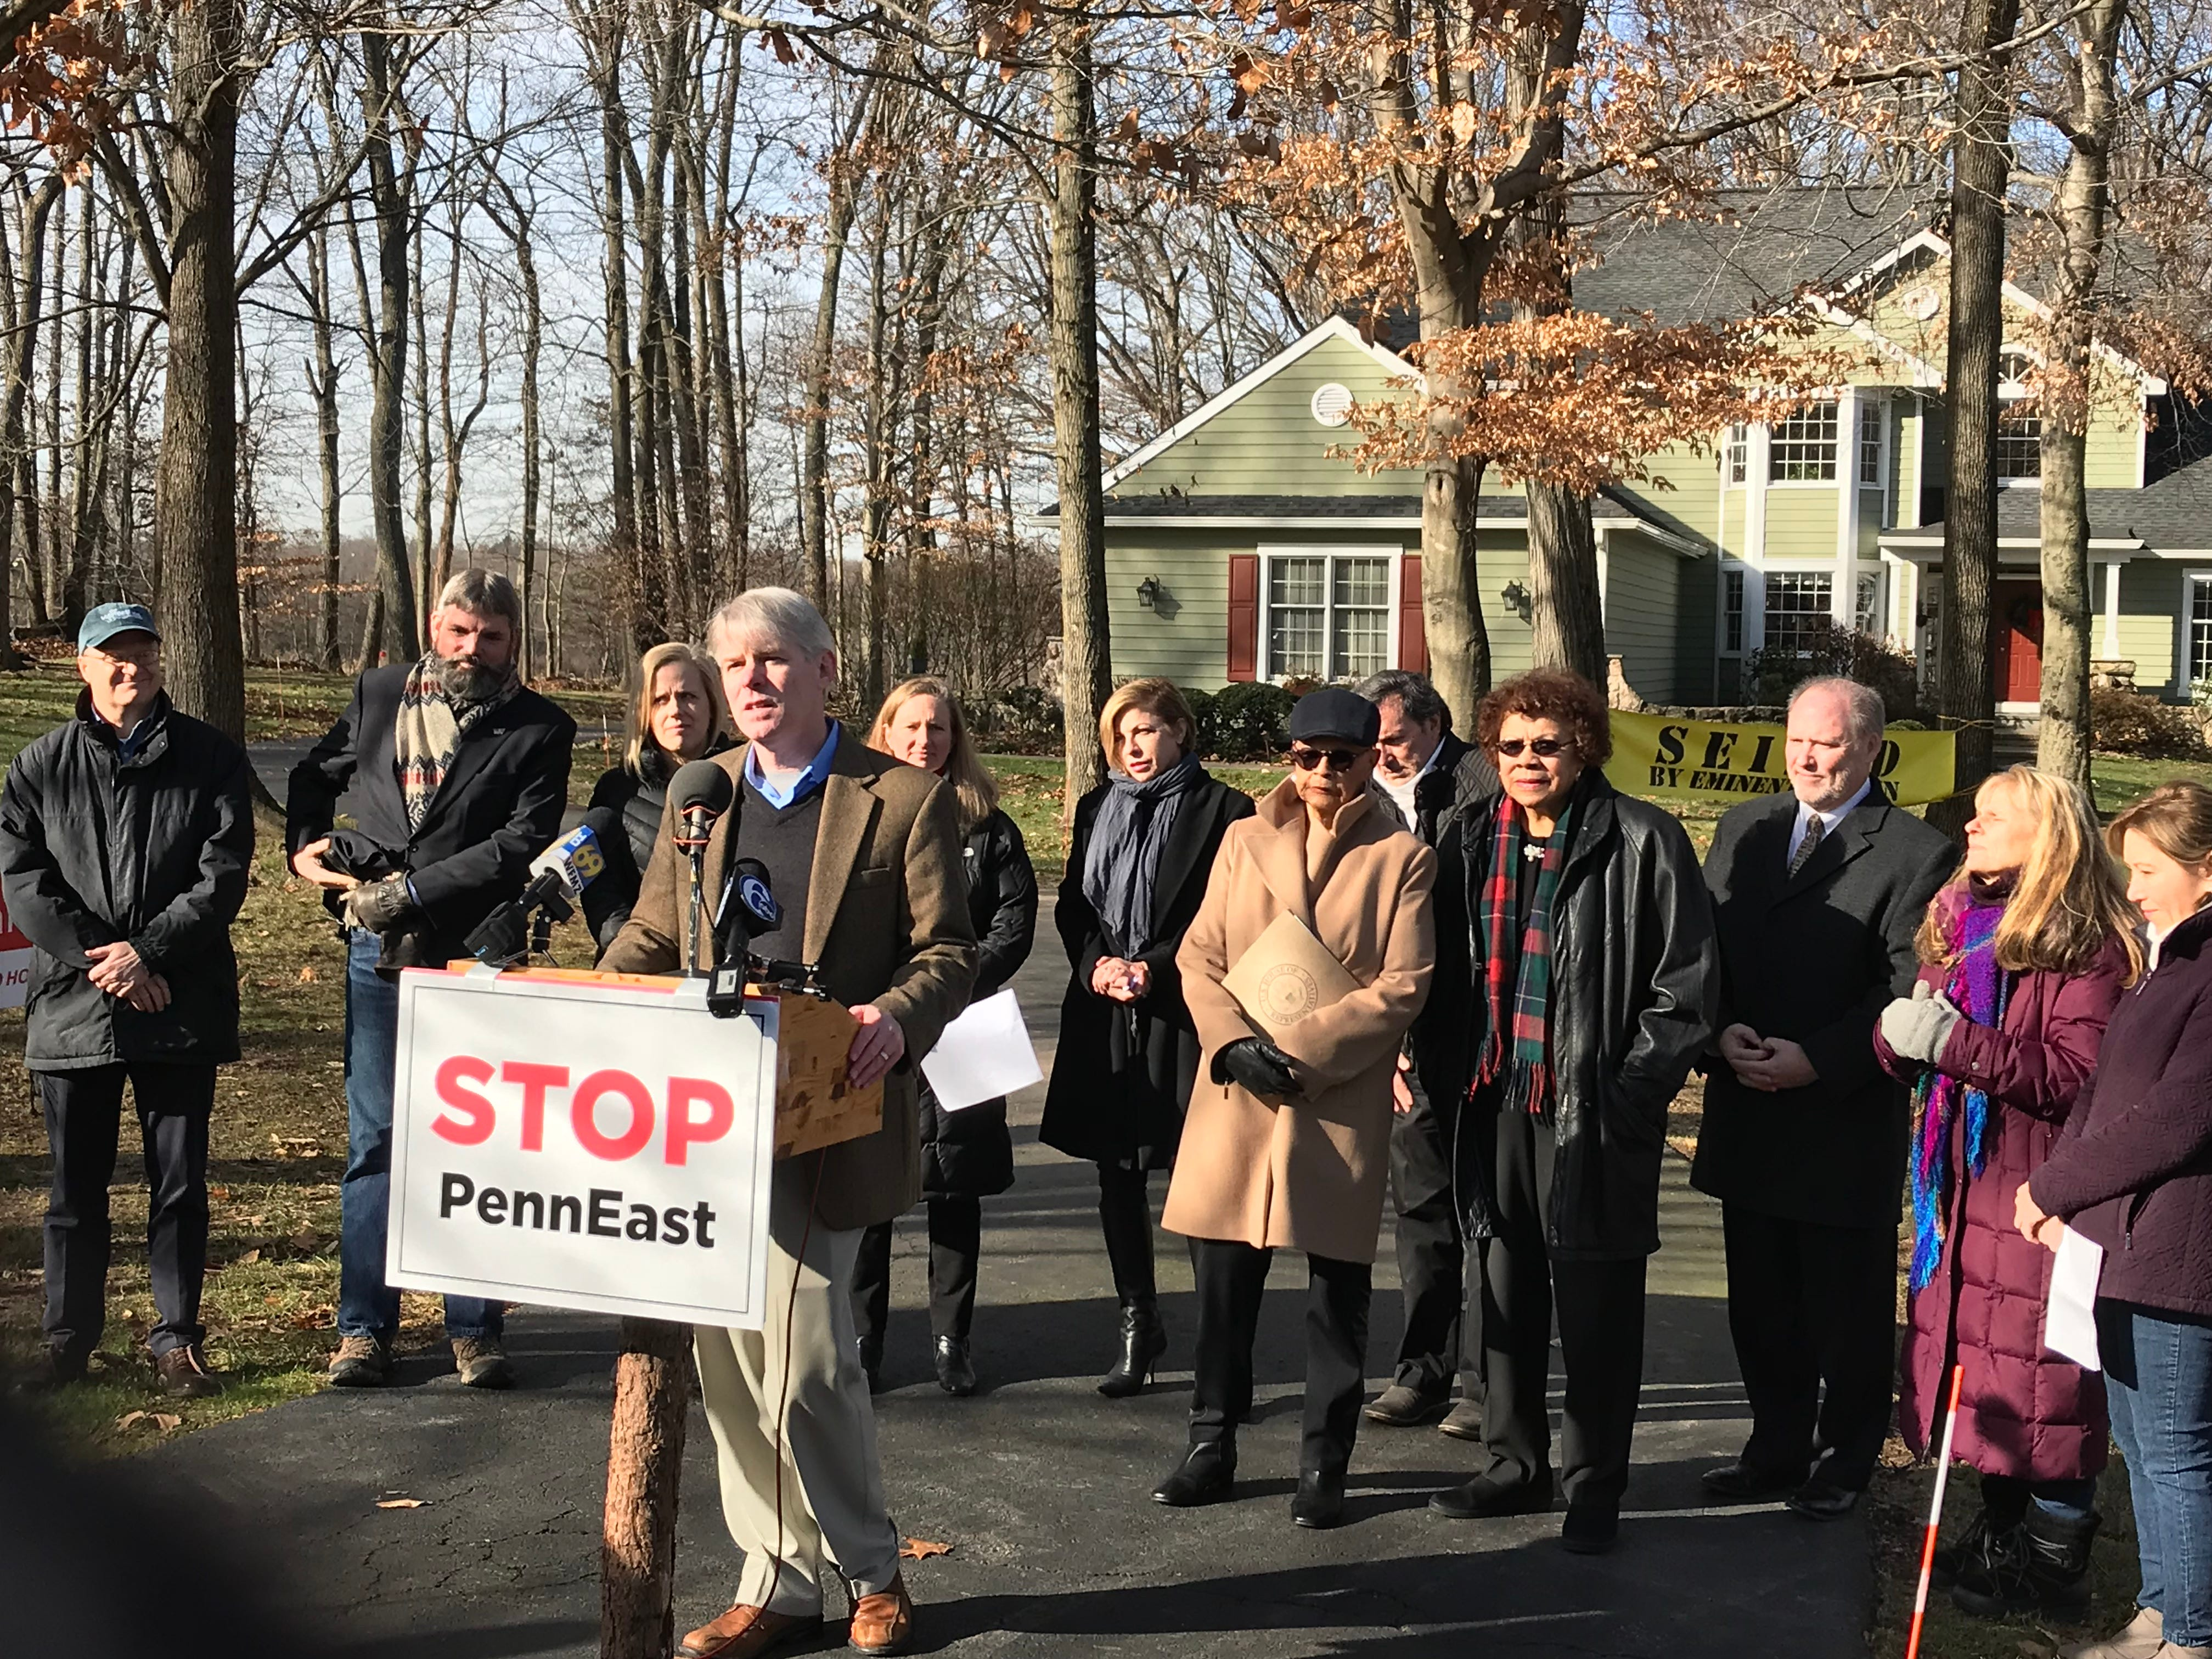 A bipartisan group of elected officials today joined conservation leaders and citizen landowners whose land will be seized by PennEast pipeline after a court ruling on Friday, in opposition to an infrastructure project that will serve no public benefit.